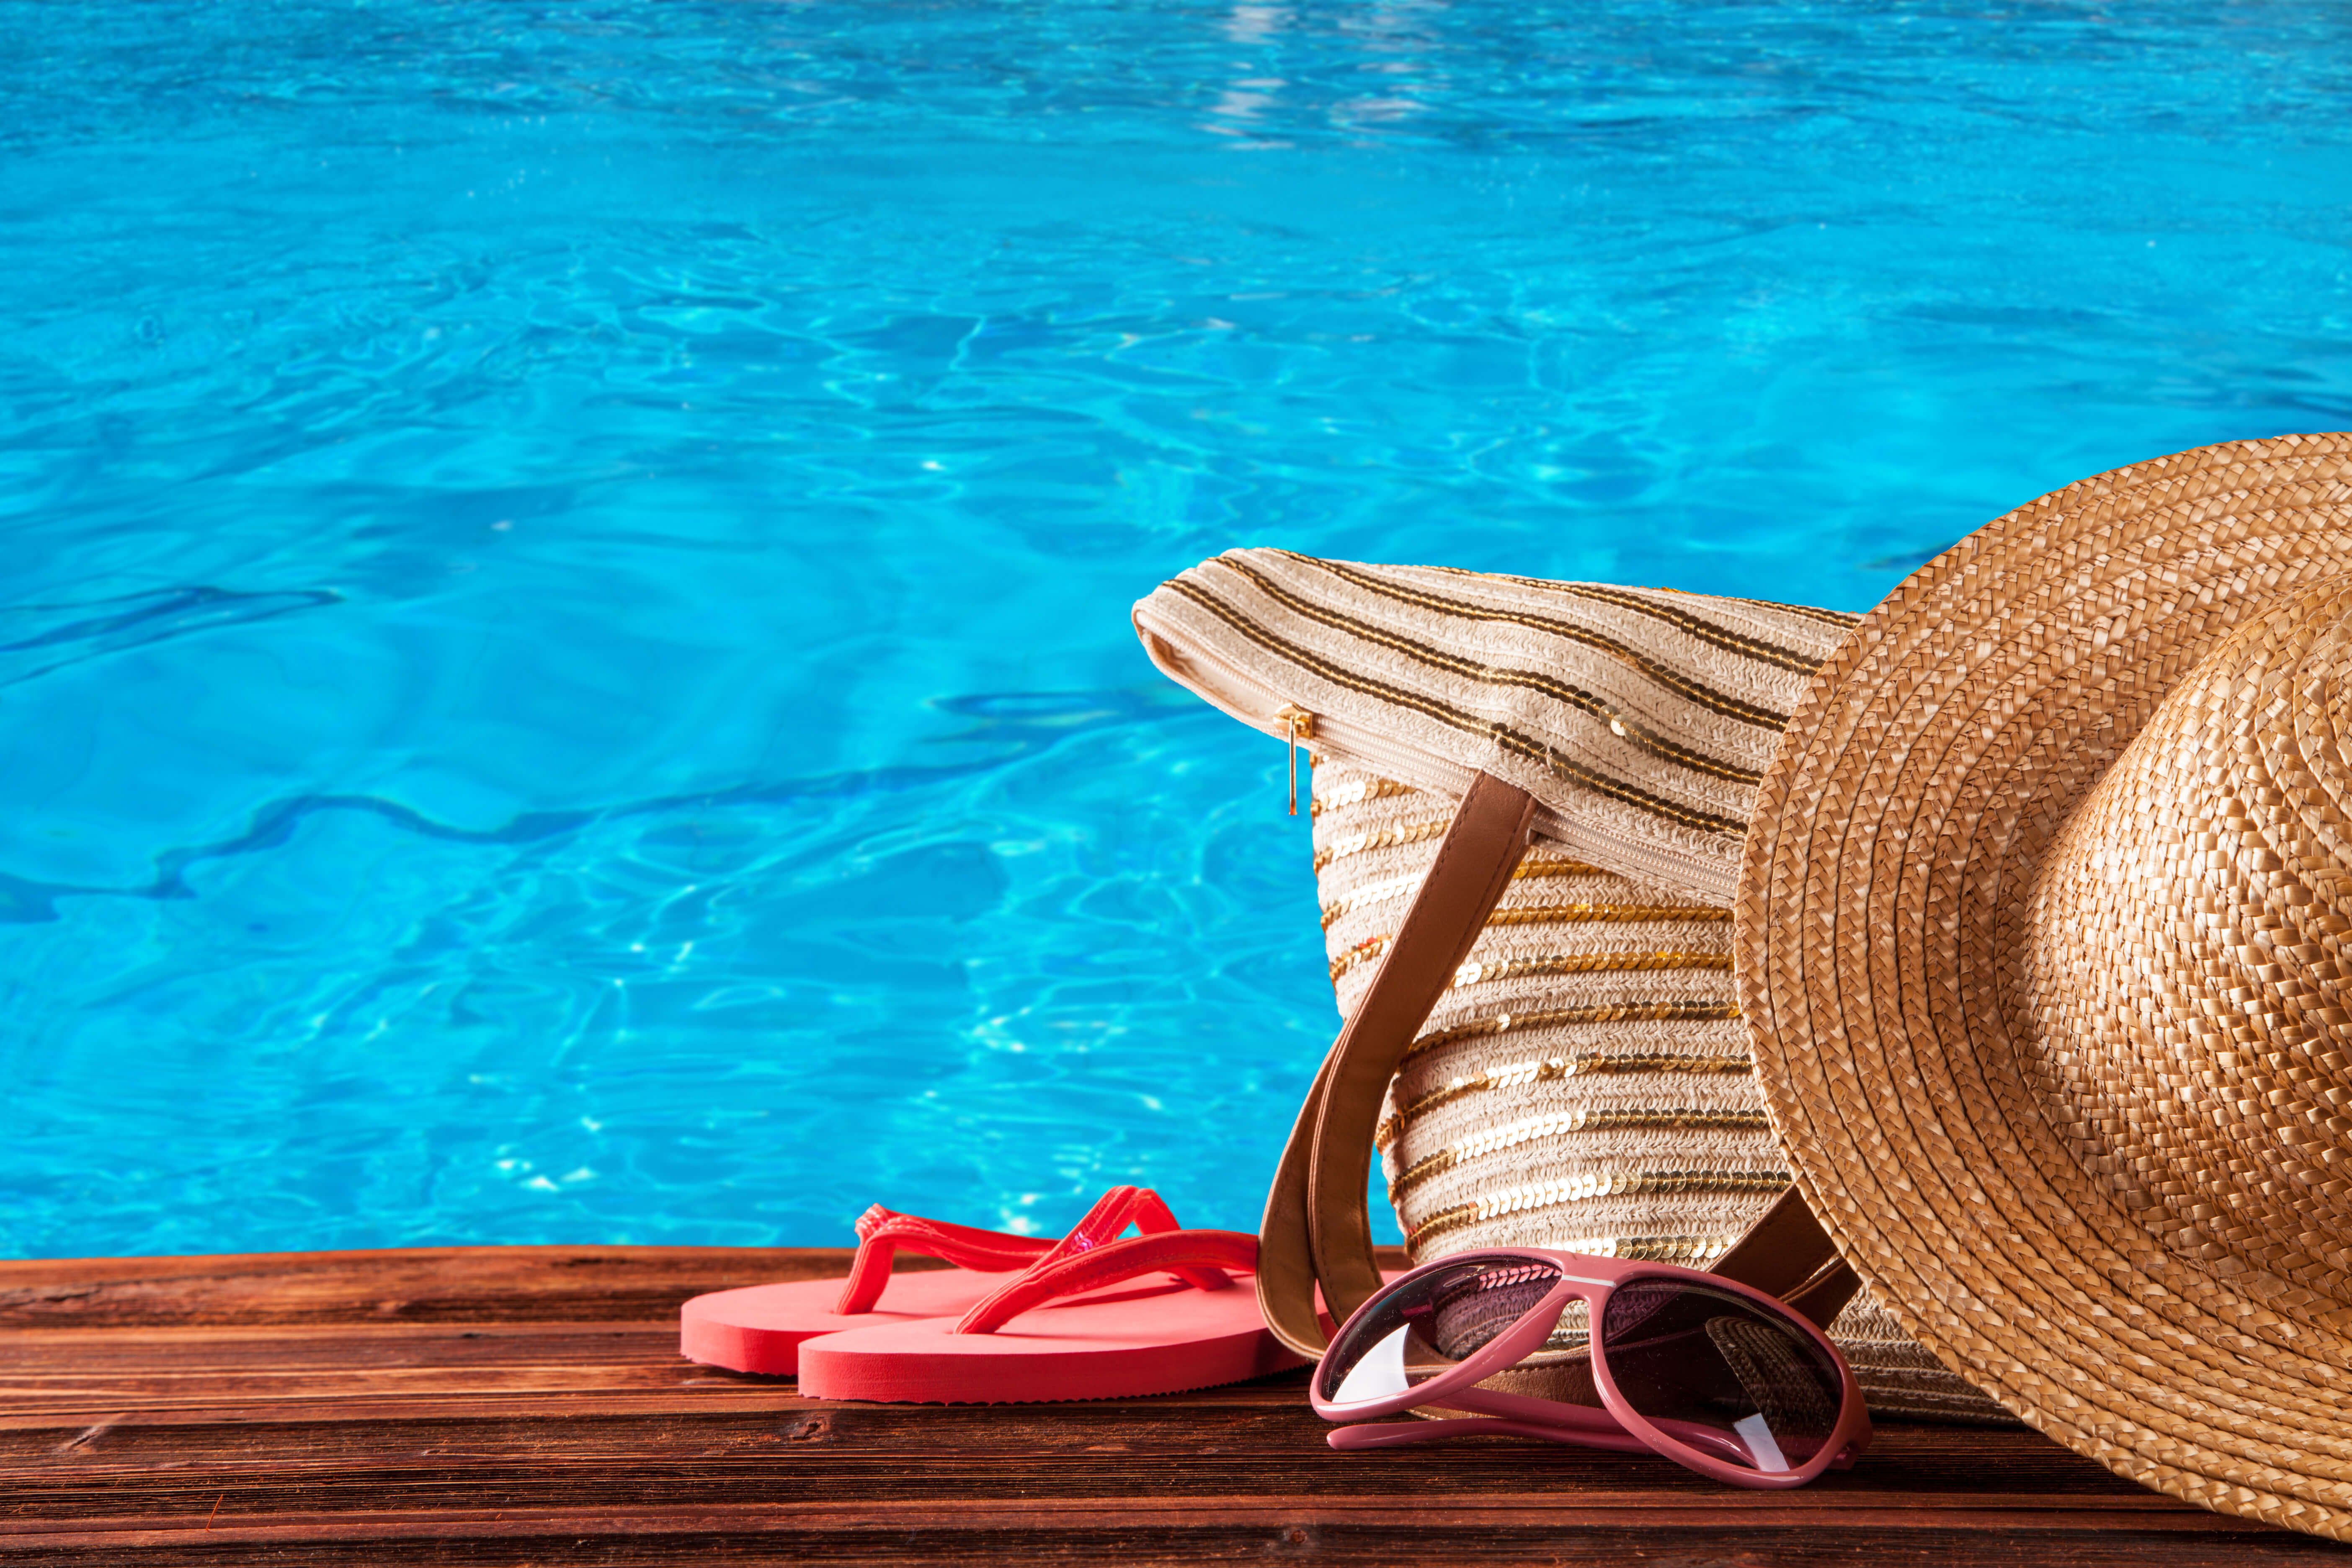 Tips for Starting Your Own Pool Business